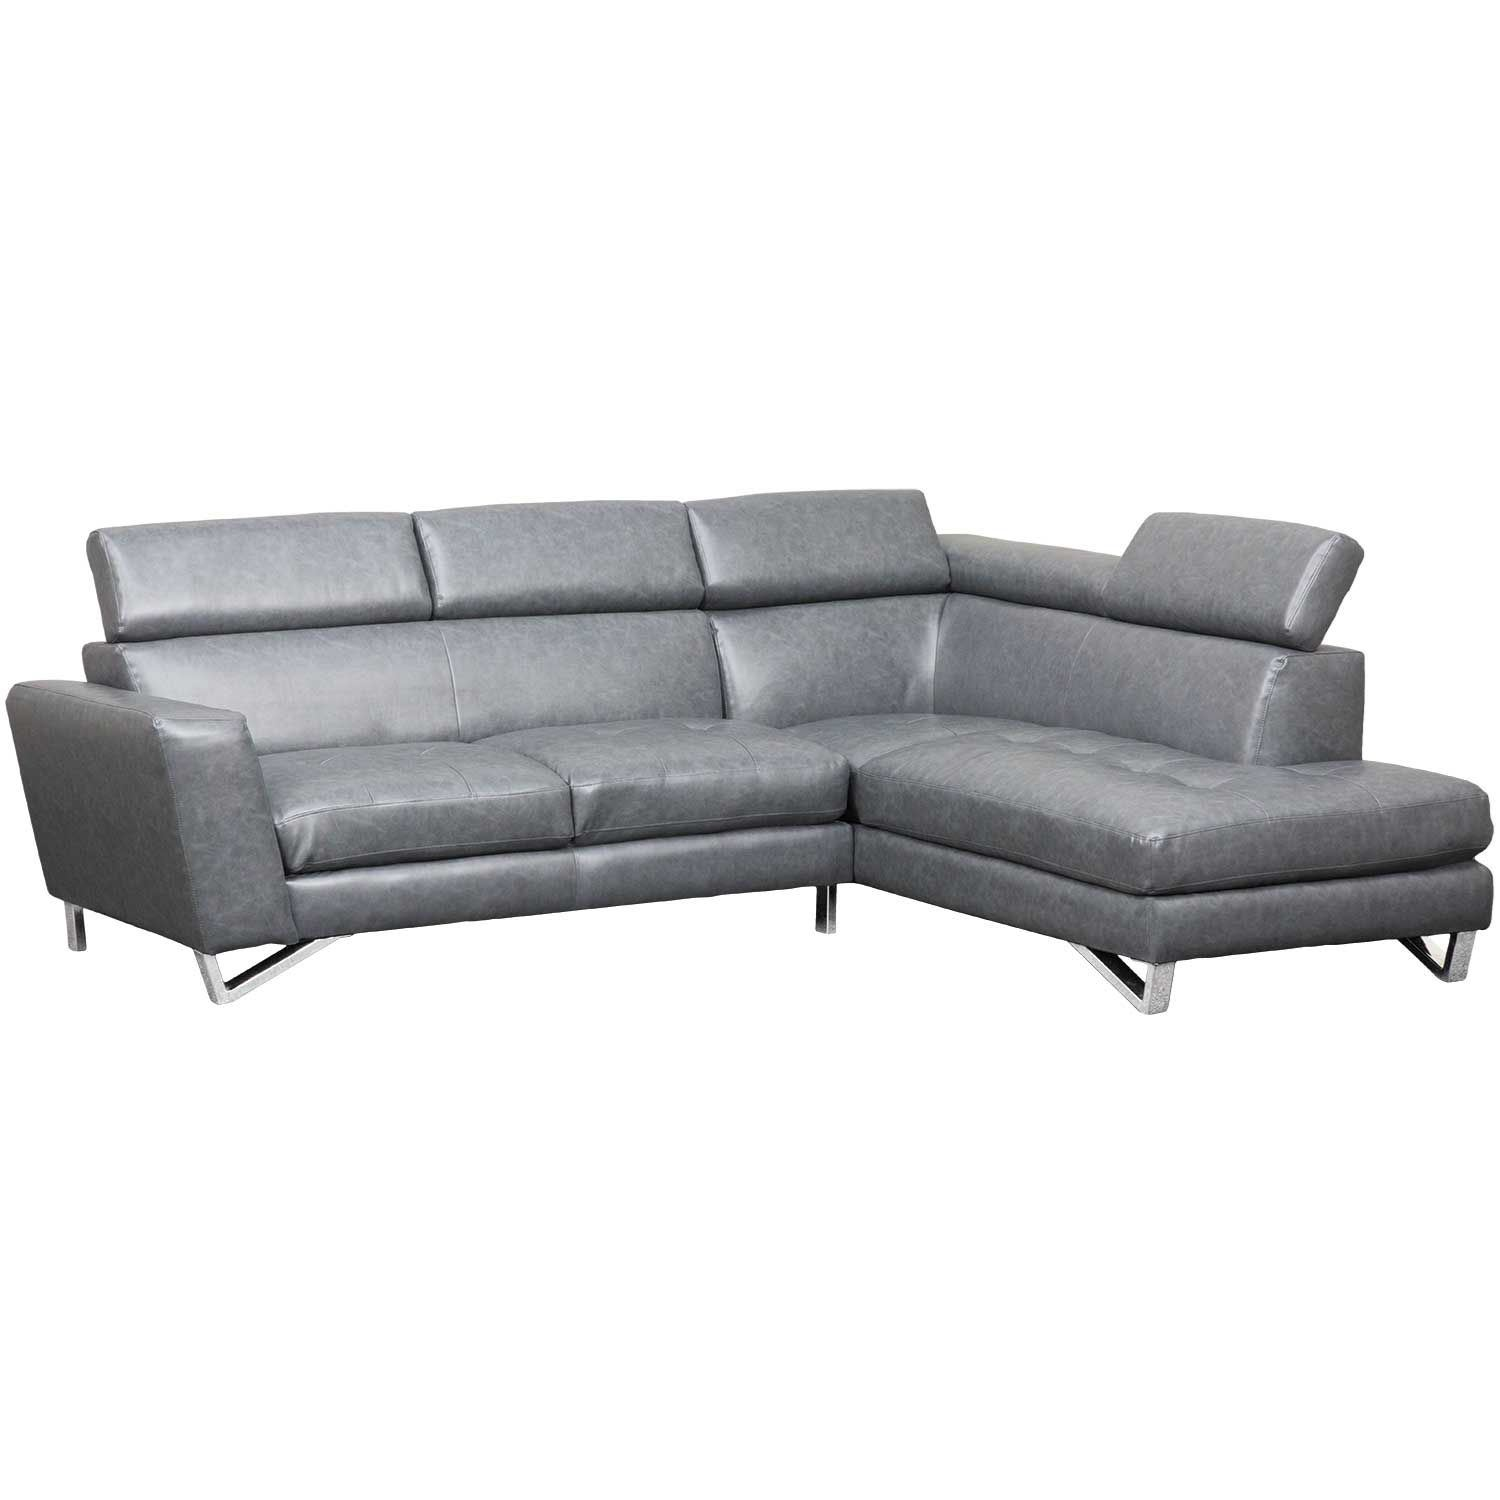 Gray 2 PC Bonded Leather Sectional 1M-9836-2PC